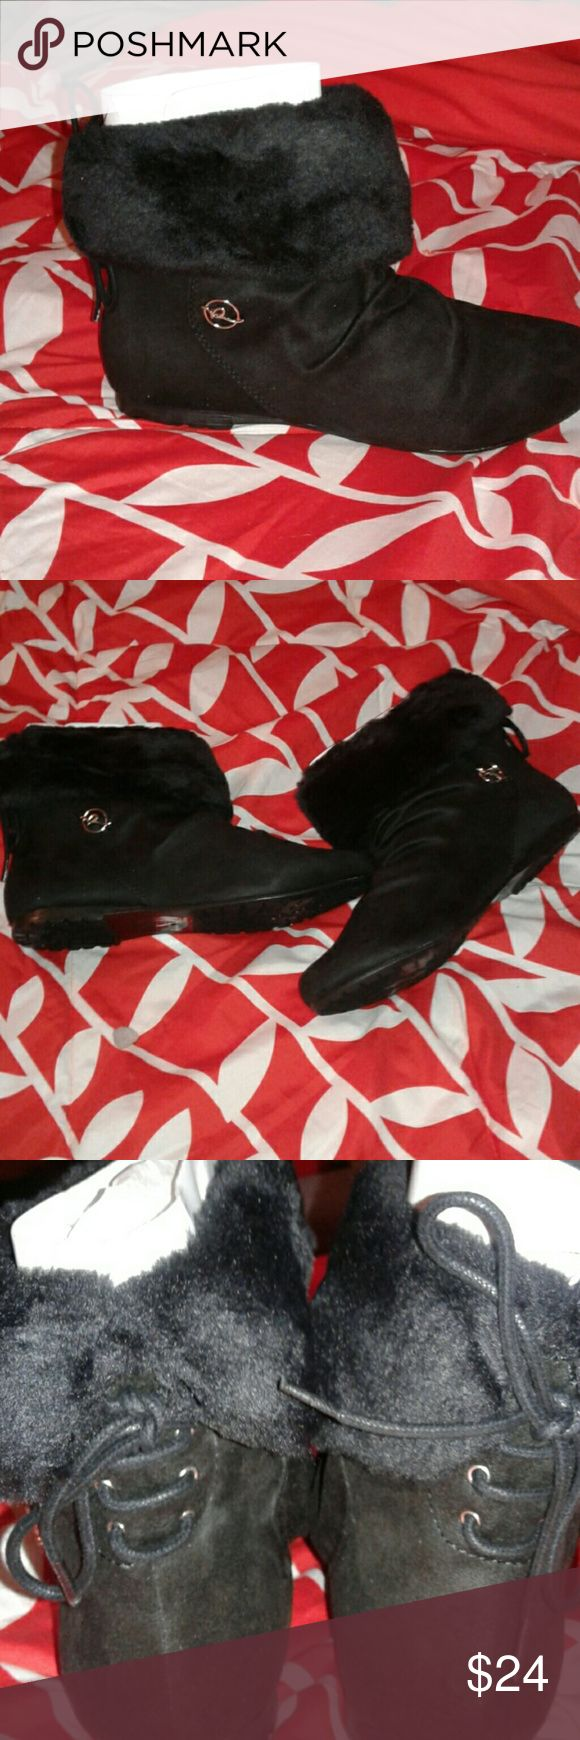 LADIES ANKLE BOOTS LADIES BLACK NEVER WORN ROCA WEAR ANKLE BOOTS SUEDE WITH FUR ON TOP TIES IN BACK THE LAST PICTURE I SHOWED THAT THE BOOT CAN BE WORN UP OR DOWN, THE FUR SHOWS MORE WHEN BOOT IS FOLDED DOWN, THEY ATE CUTE I LOVE THEN, I CAN SEE THE FOAM IN SOME OF THEM STILL ROCA WEAR Shoes Ankle Boots & Booties